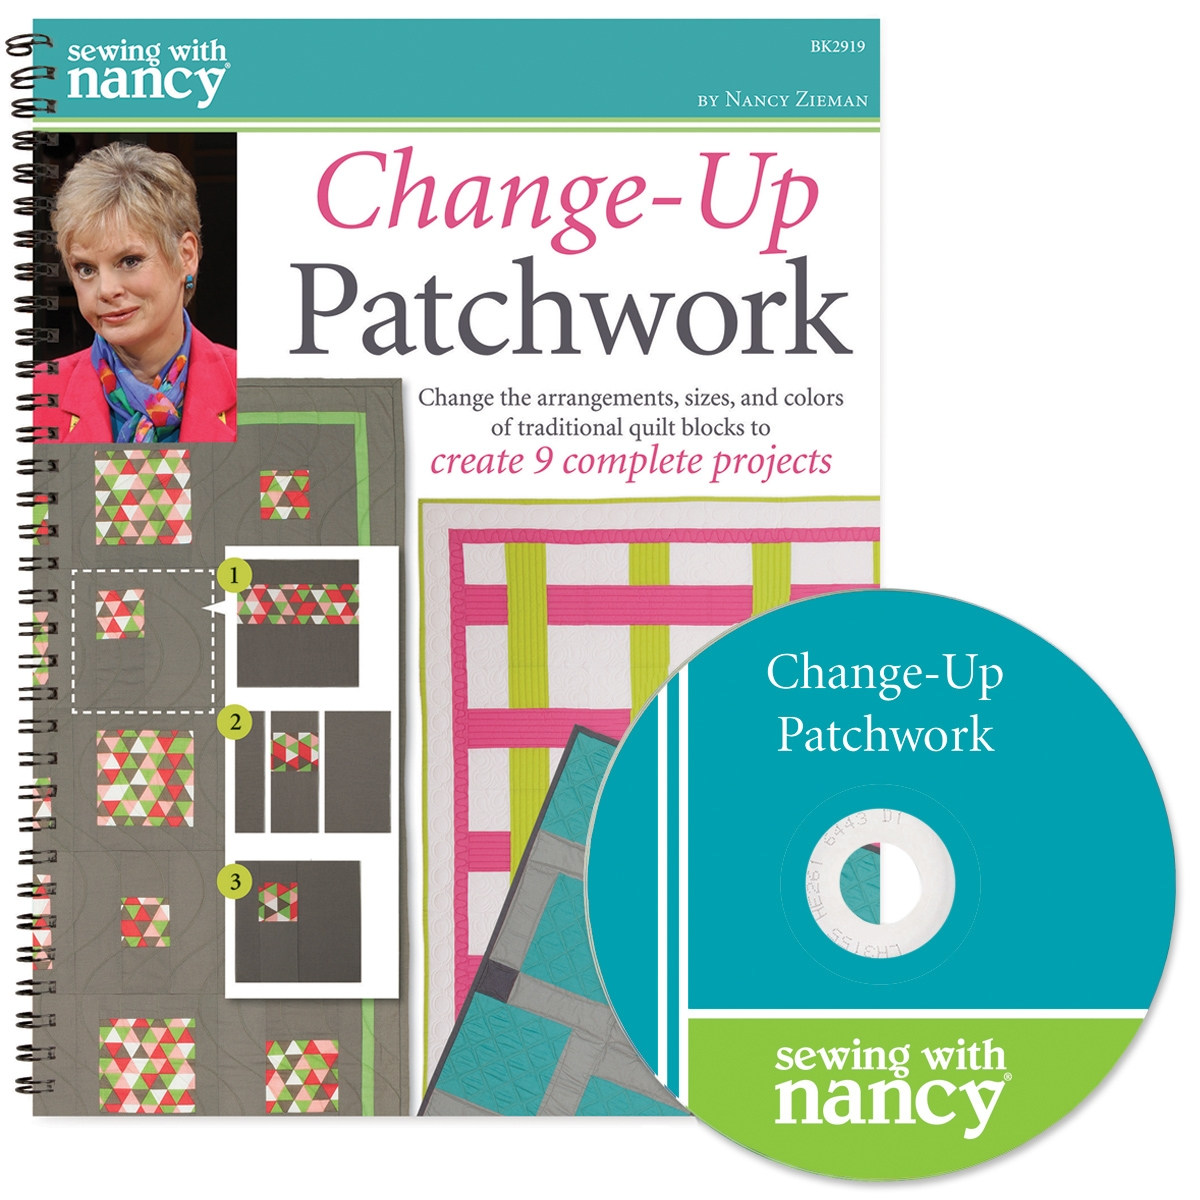 Change Up Patchwork Book and DVD